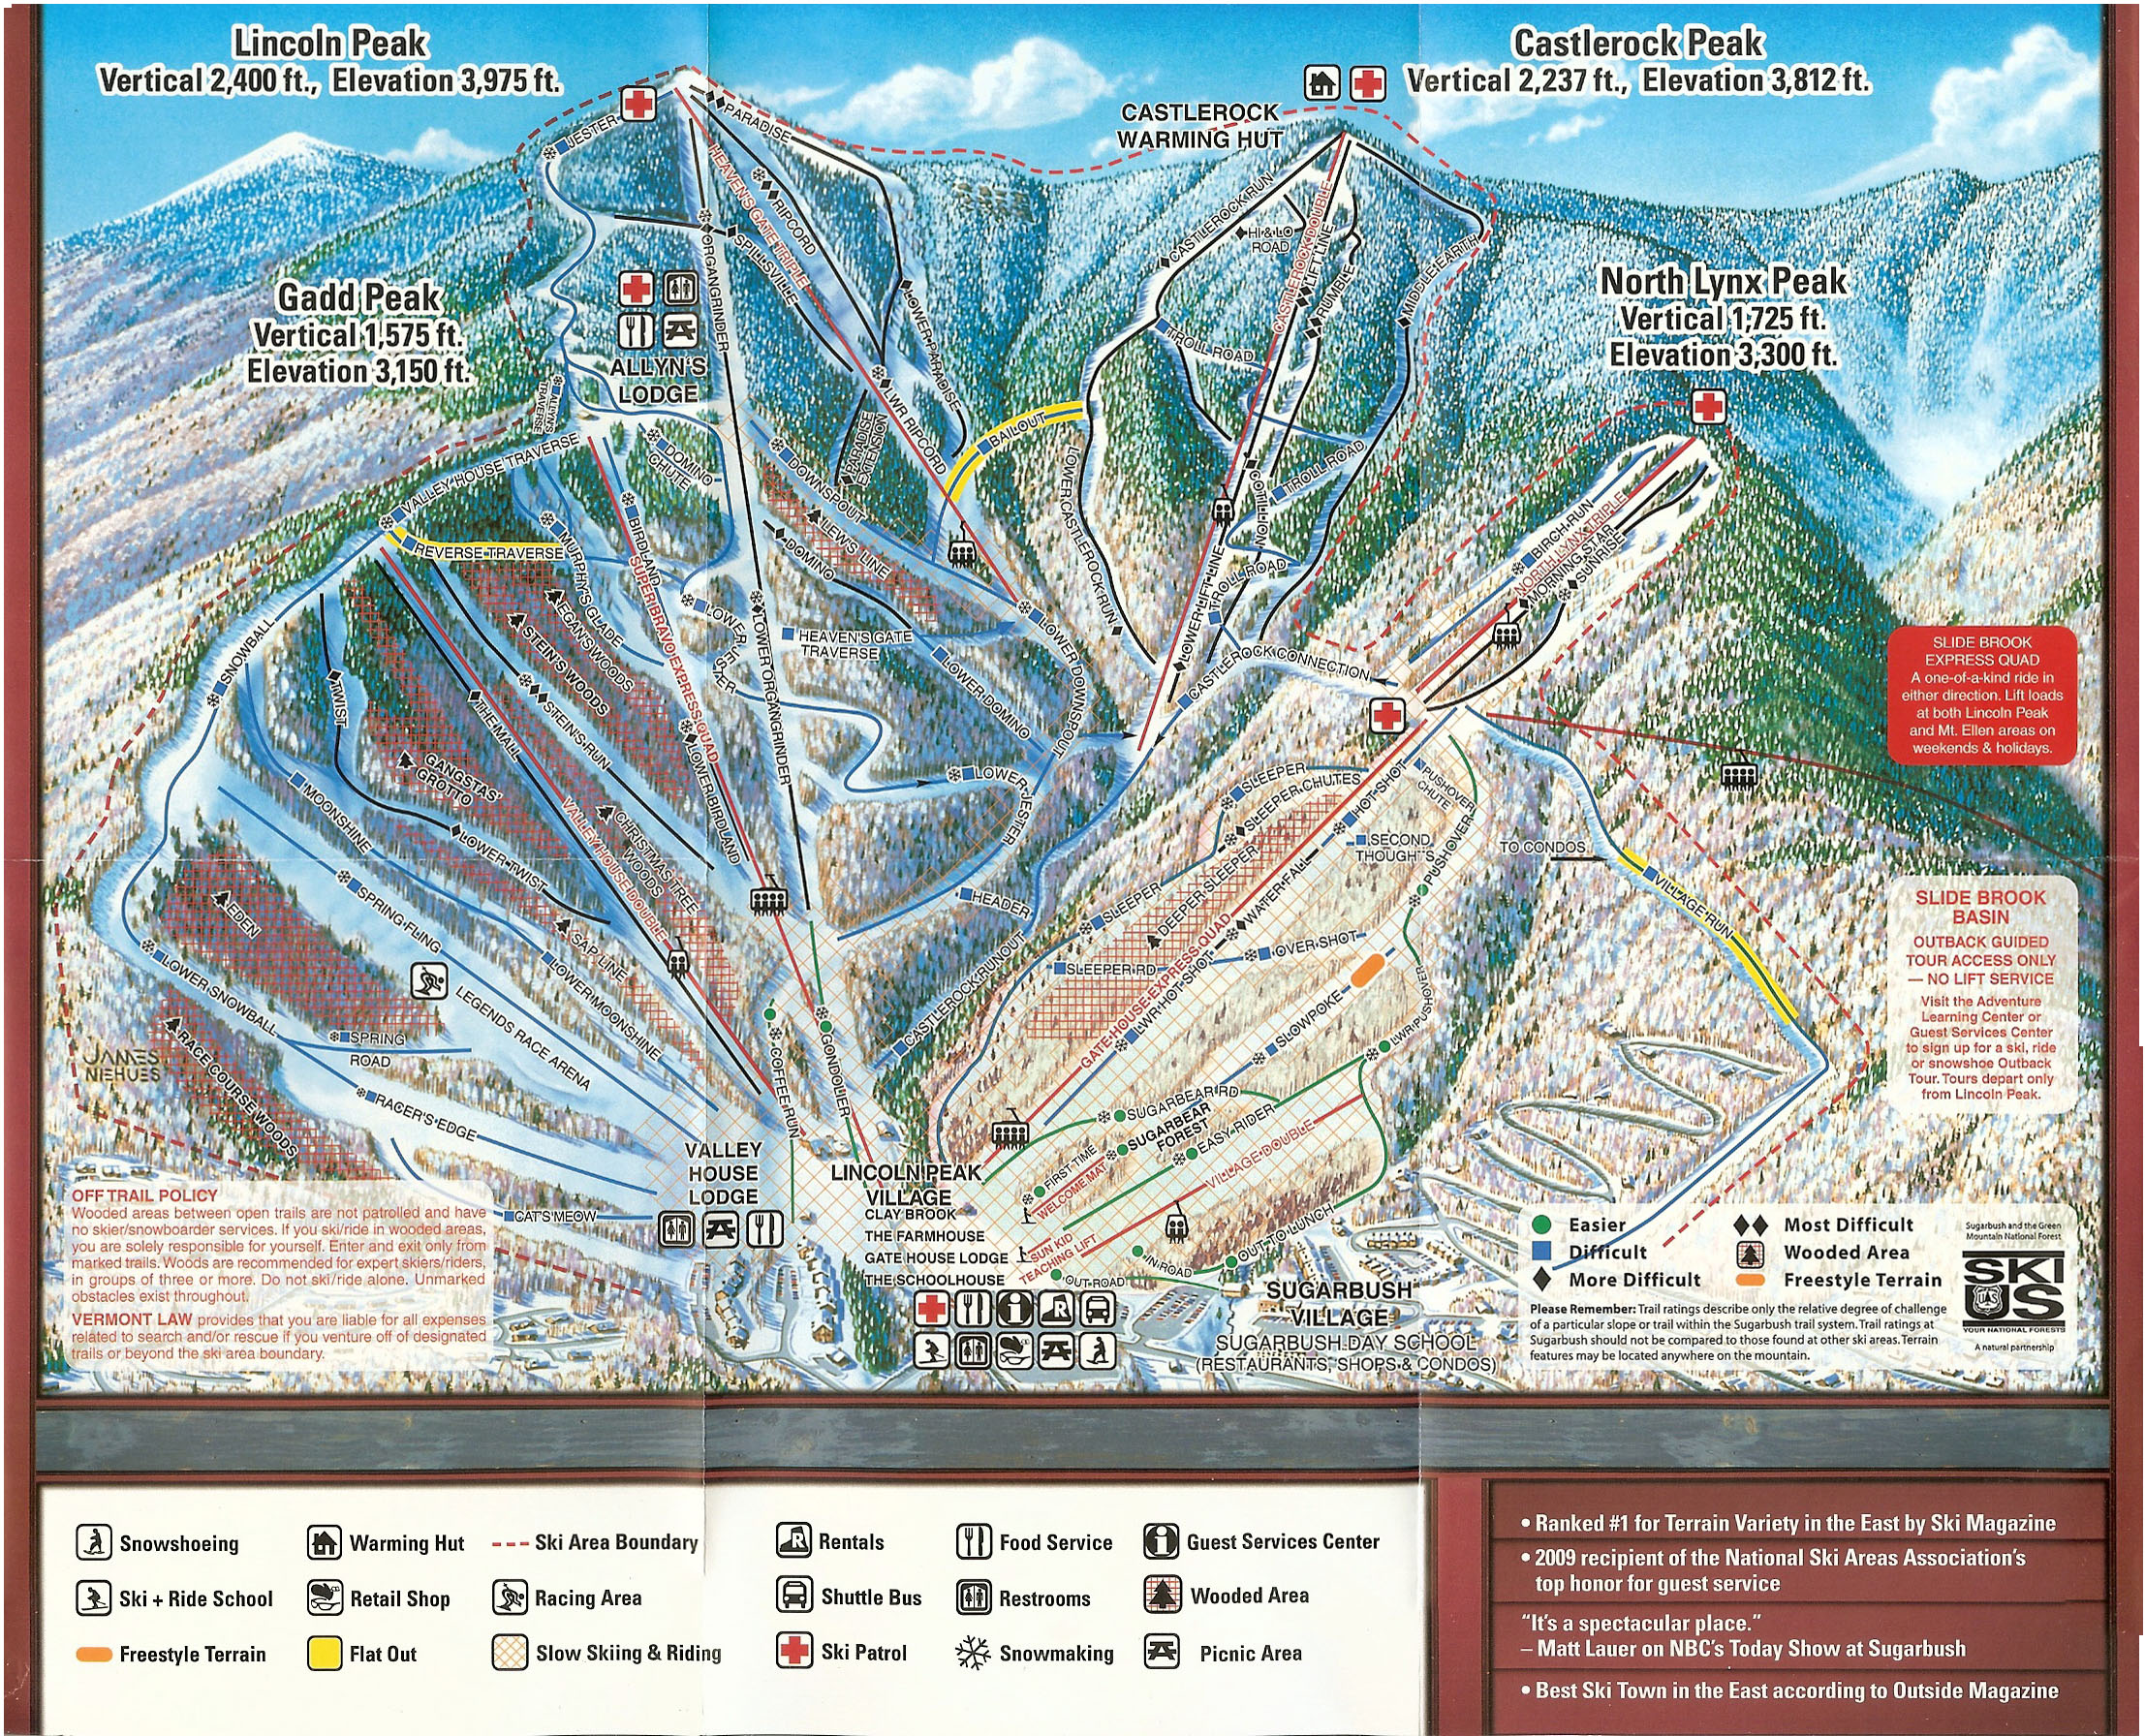 stratton mountain map with 205 on Trail Maps besides 205 furthermore Squaw Valley Alpine Meadows Winter Season Jobs besides 7969 as well Ski Resort.